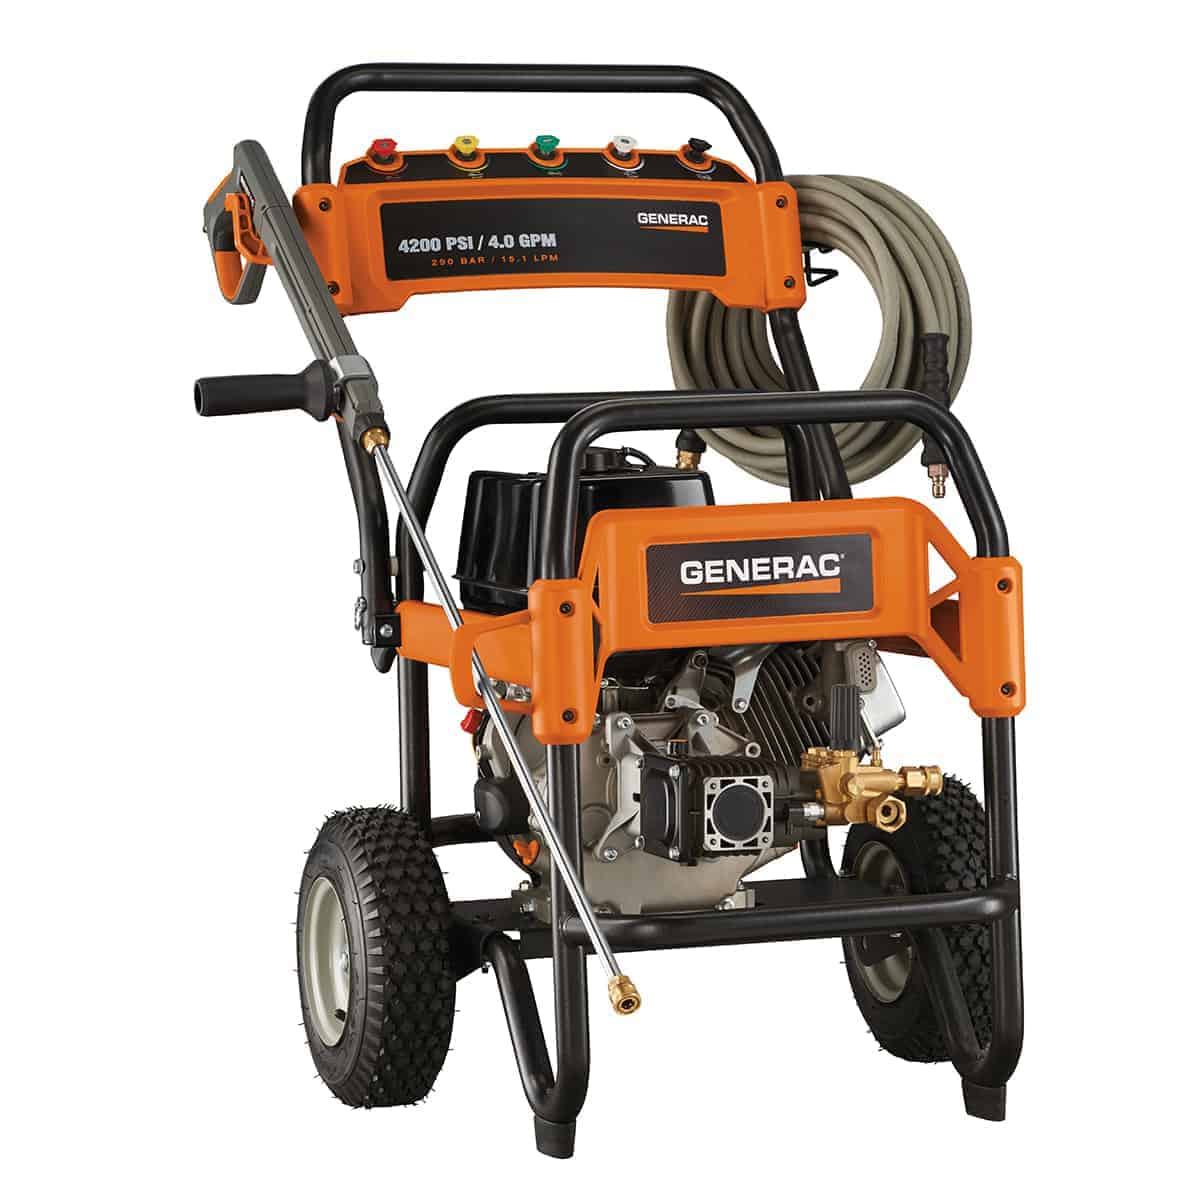 Generac 4200 PSI Commercial Power Washer 6565